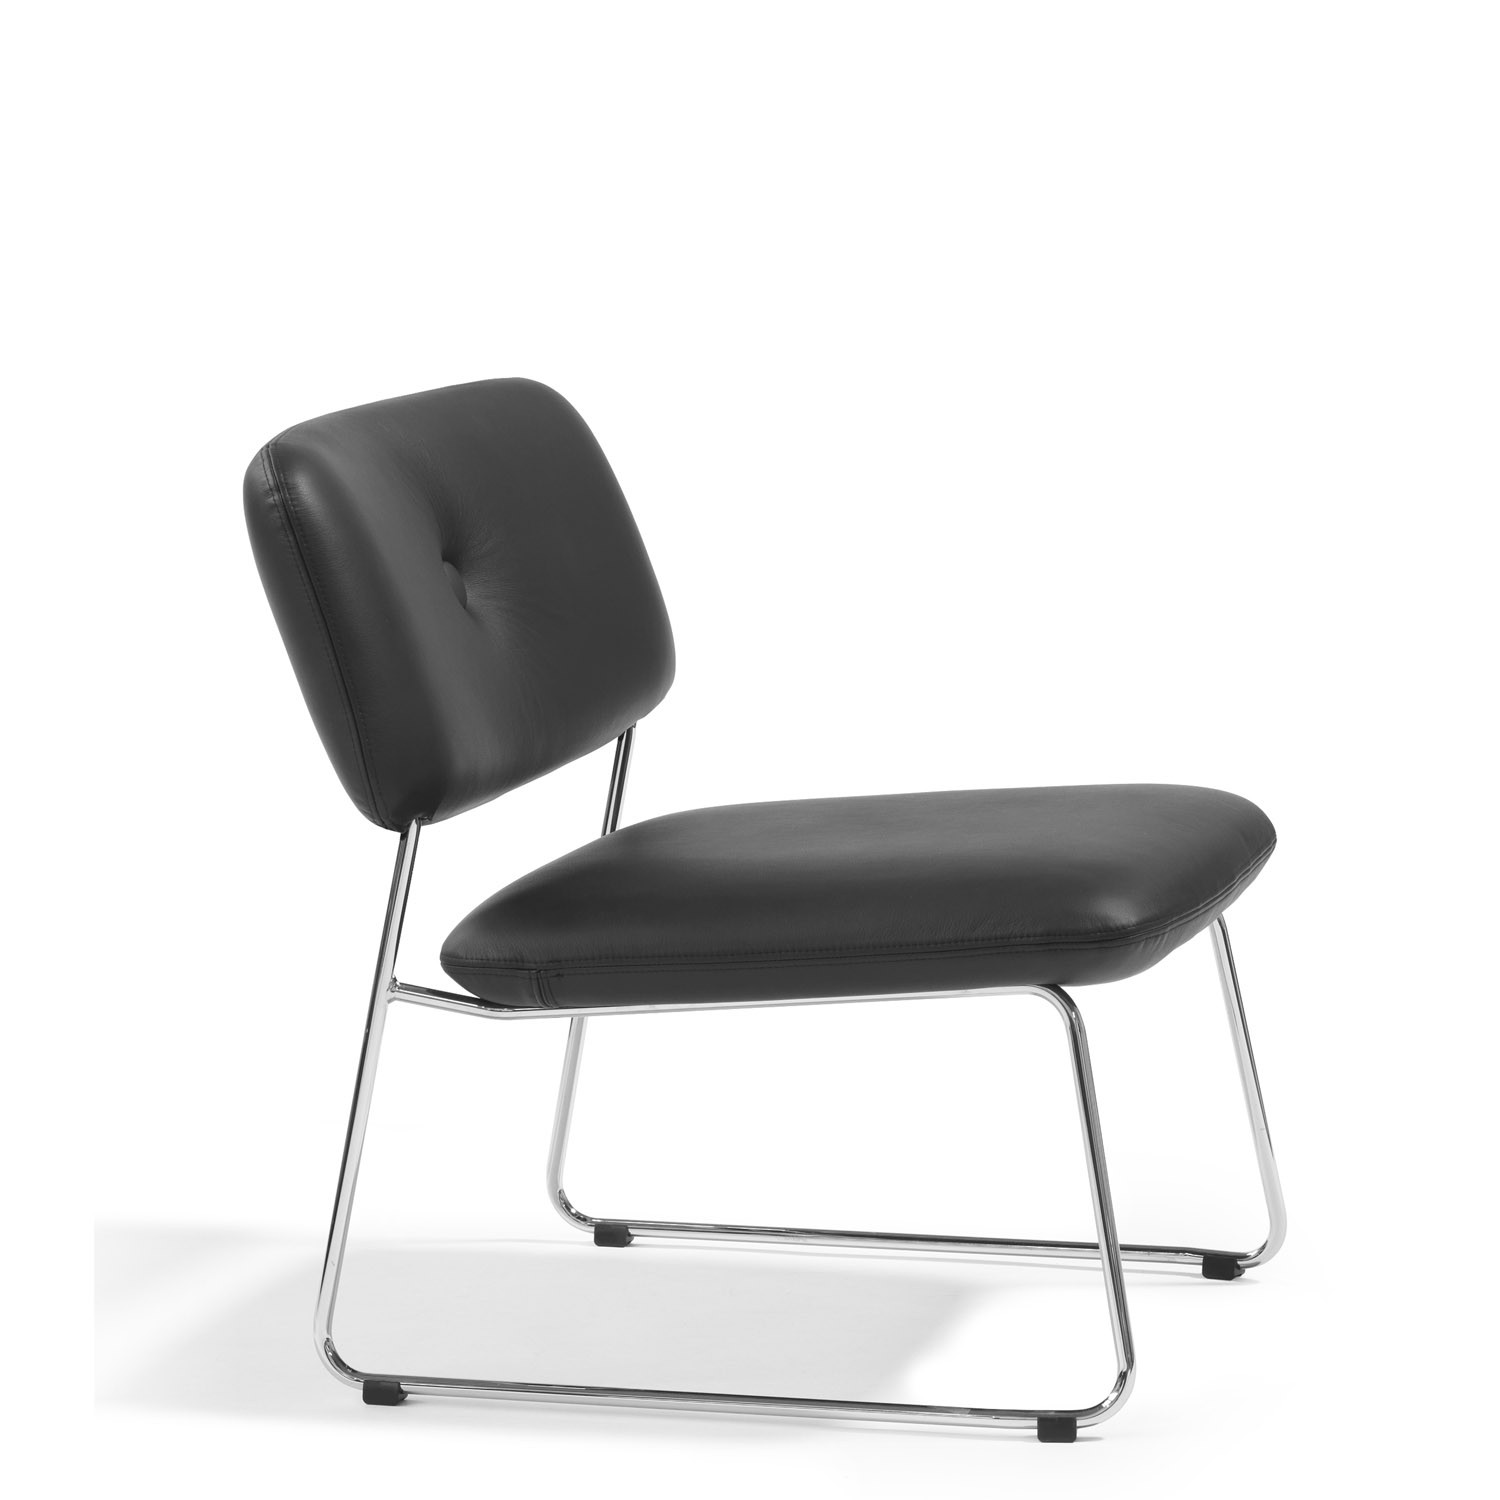 Dundra Breakout Chair S71